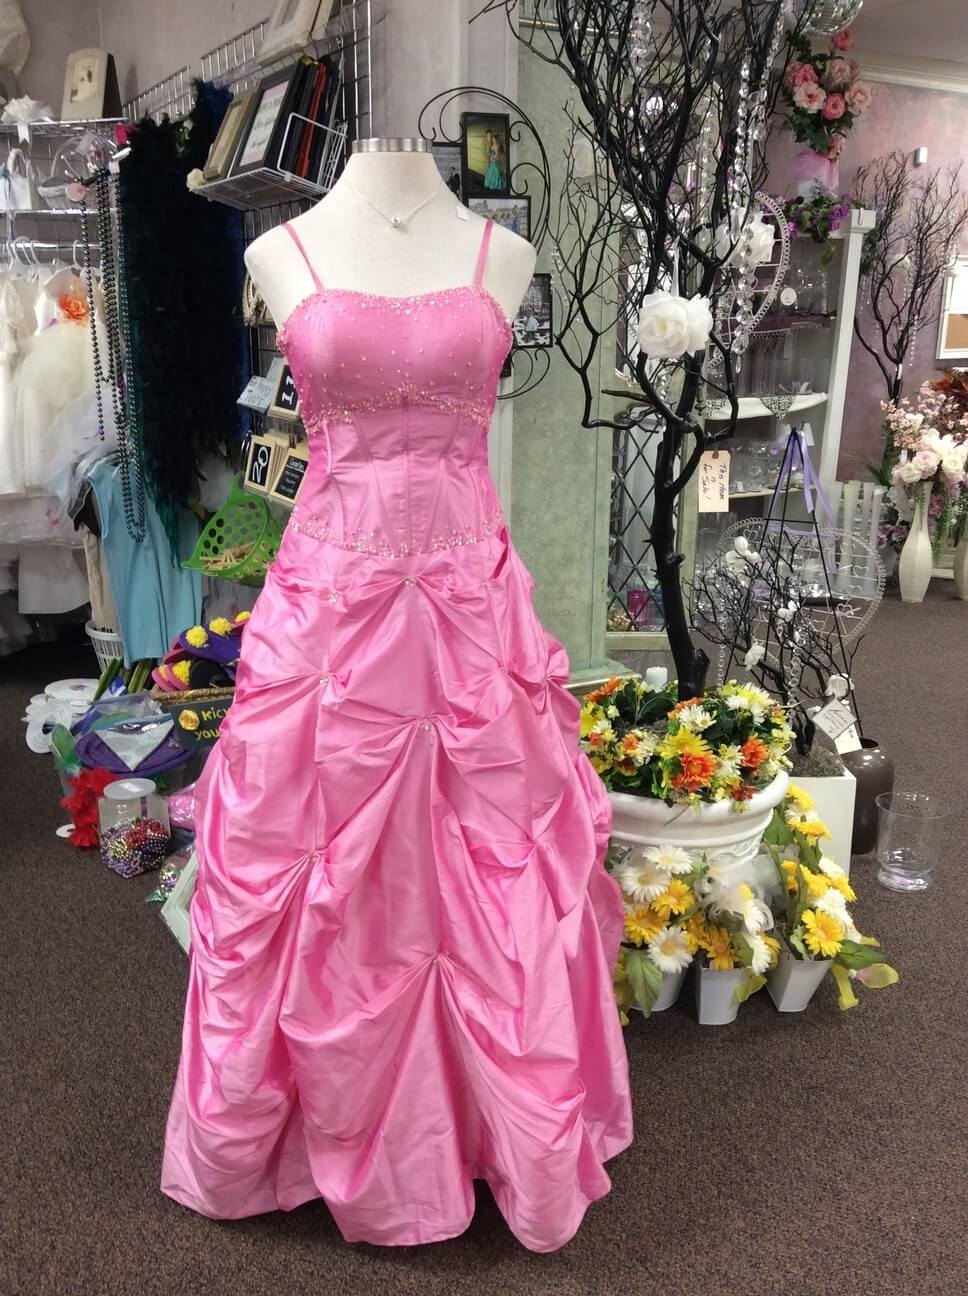 Retail sales of wedding gowns bridesmaid dresses prom dresses tux